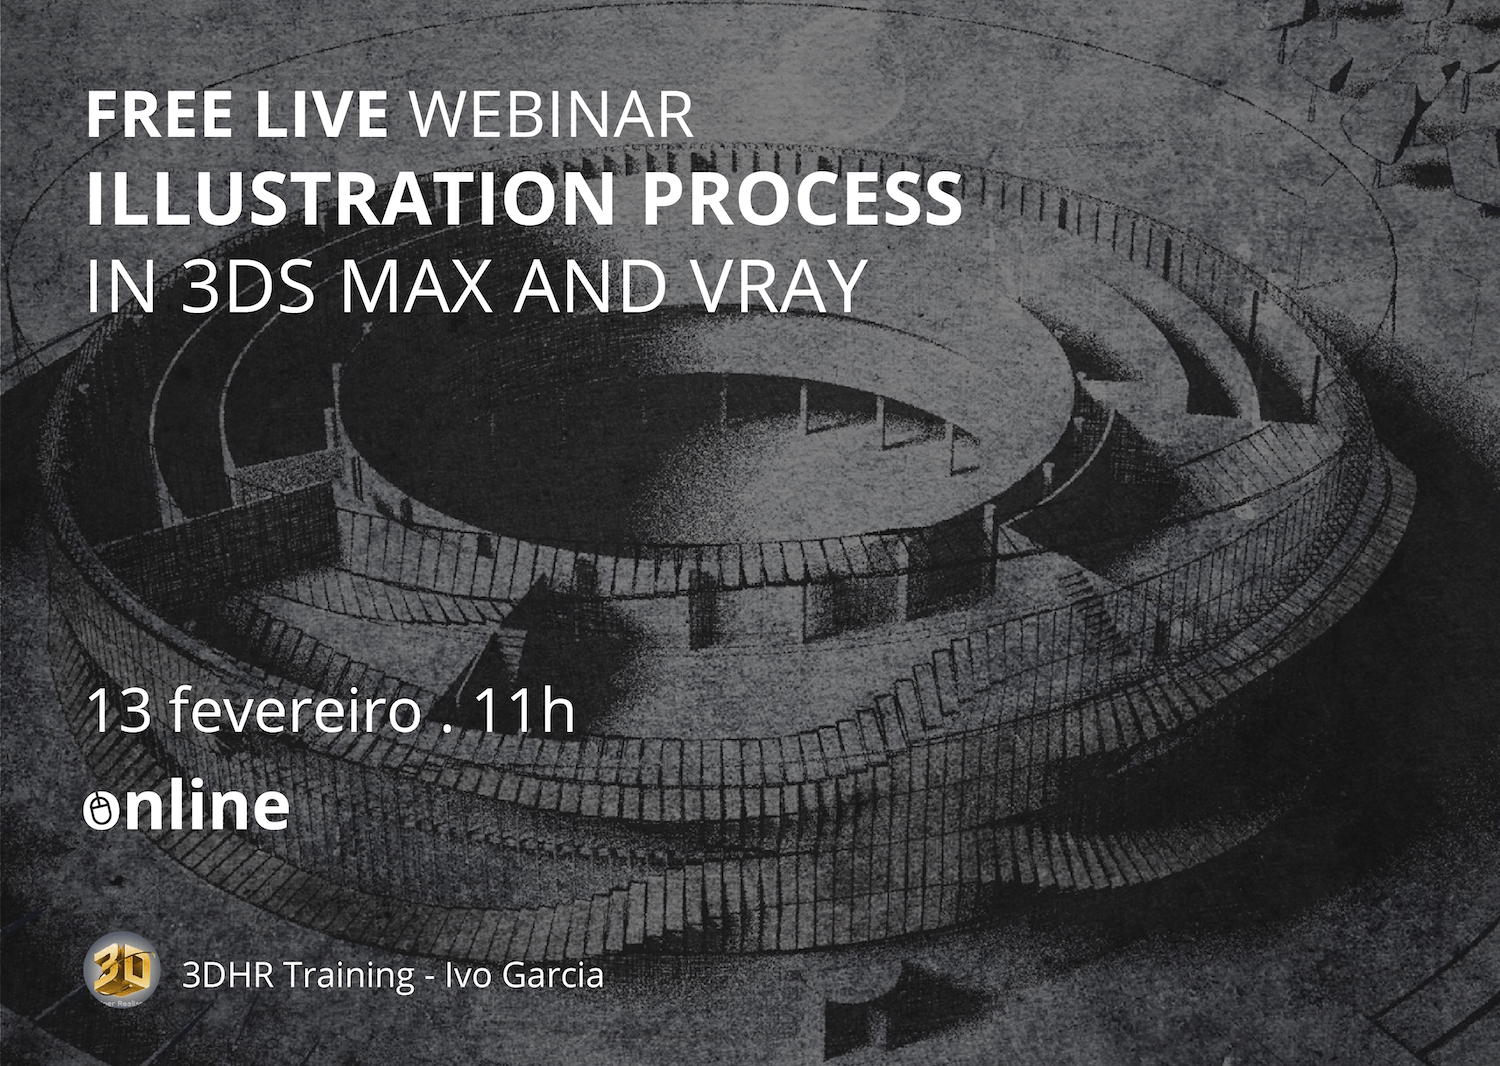 Free live webinar 3DHR: Ilustration process in 3ds Max and Vray